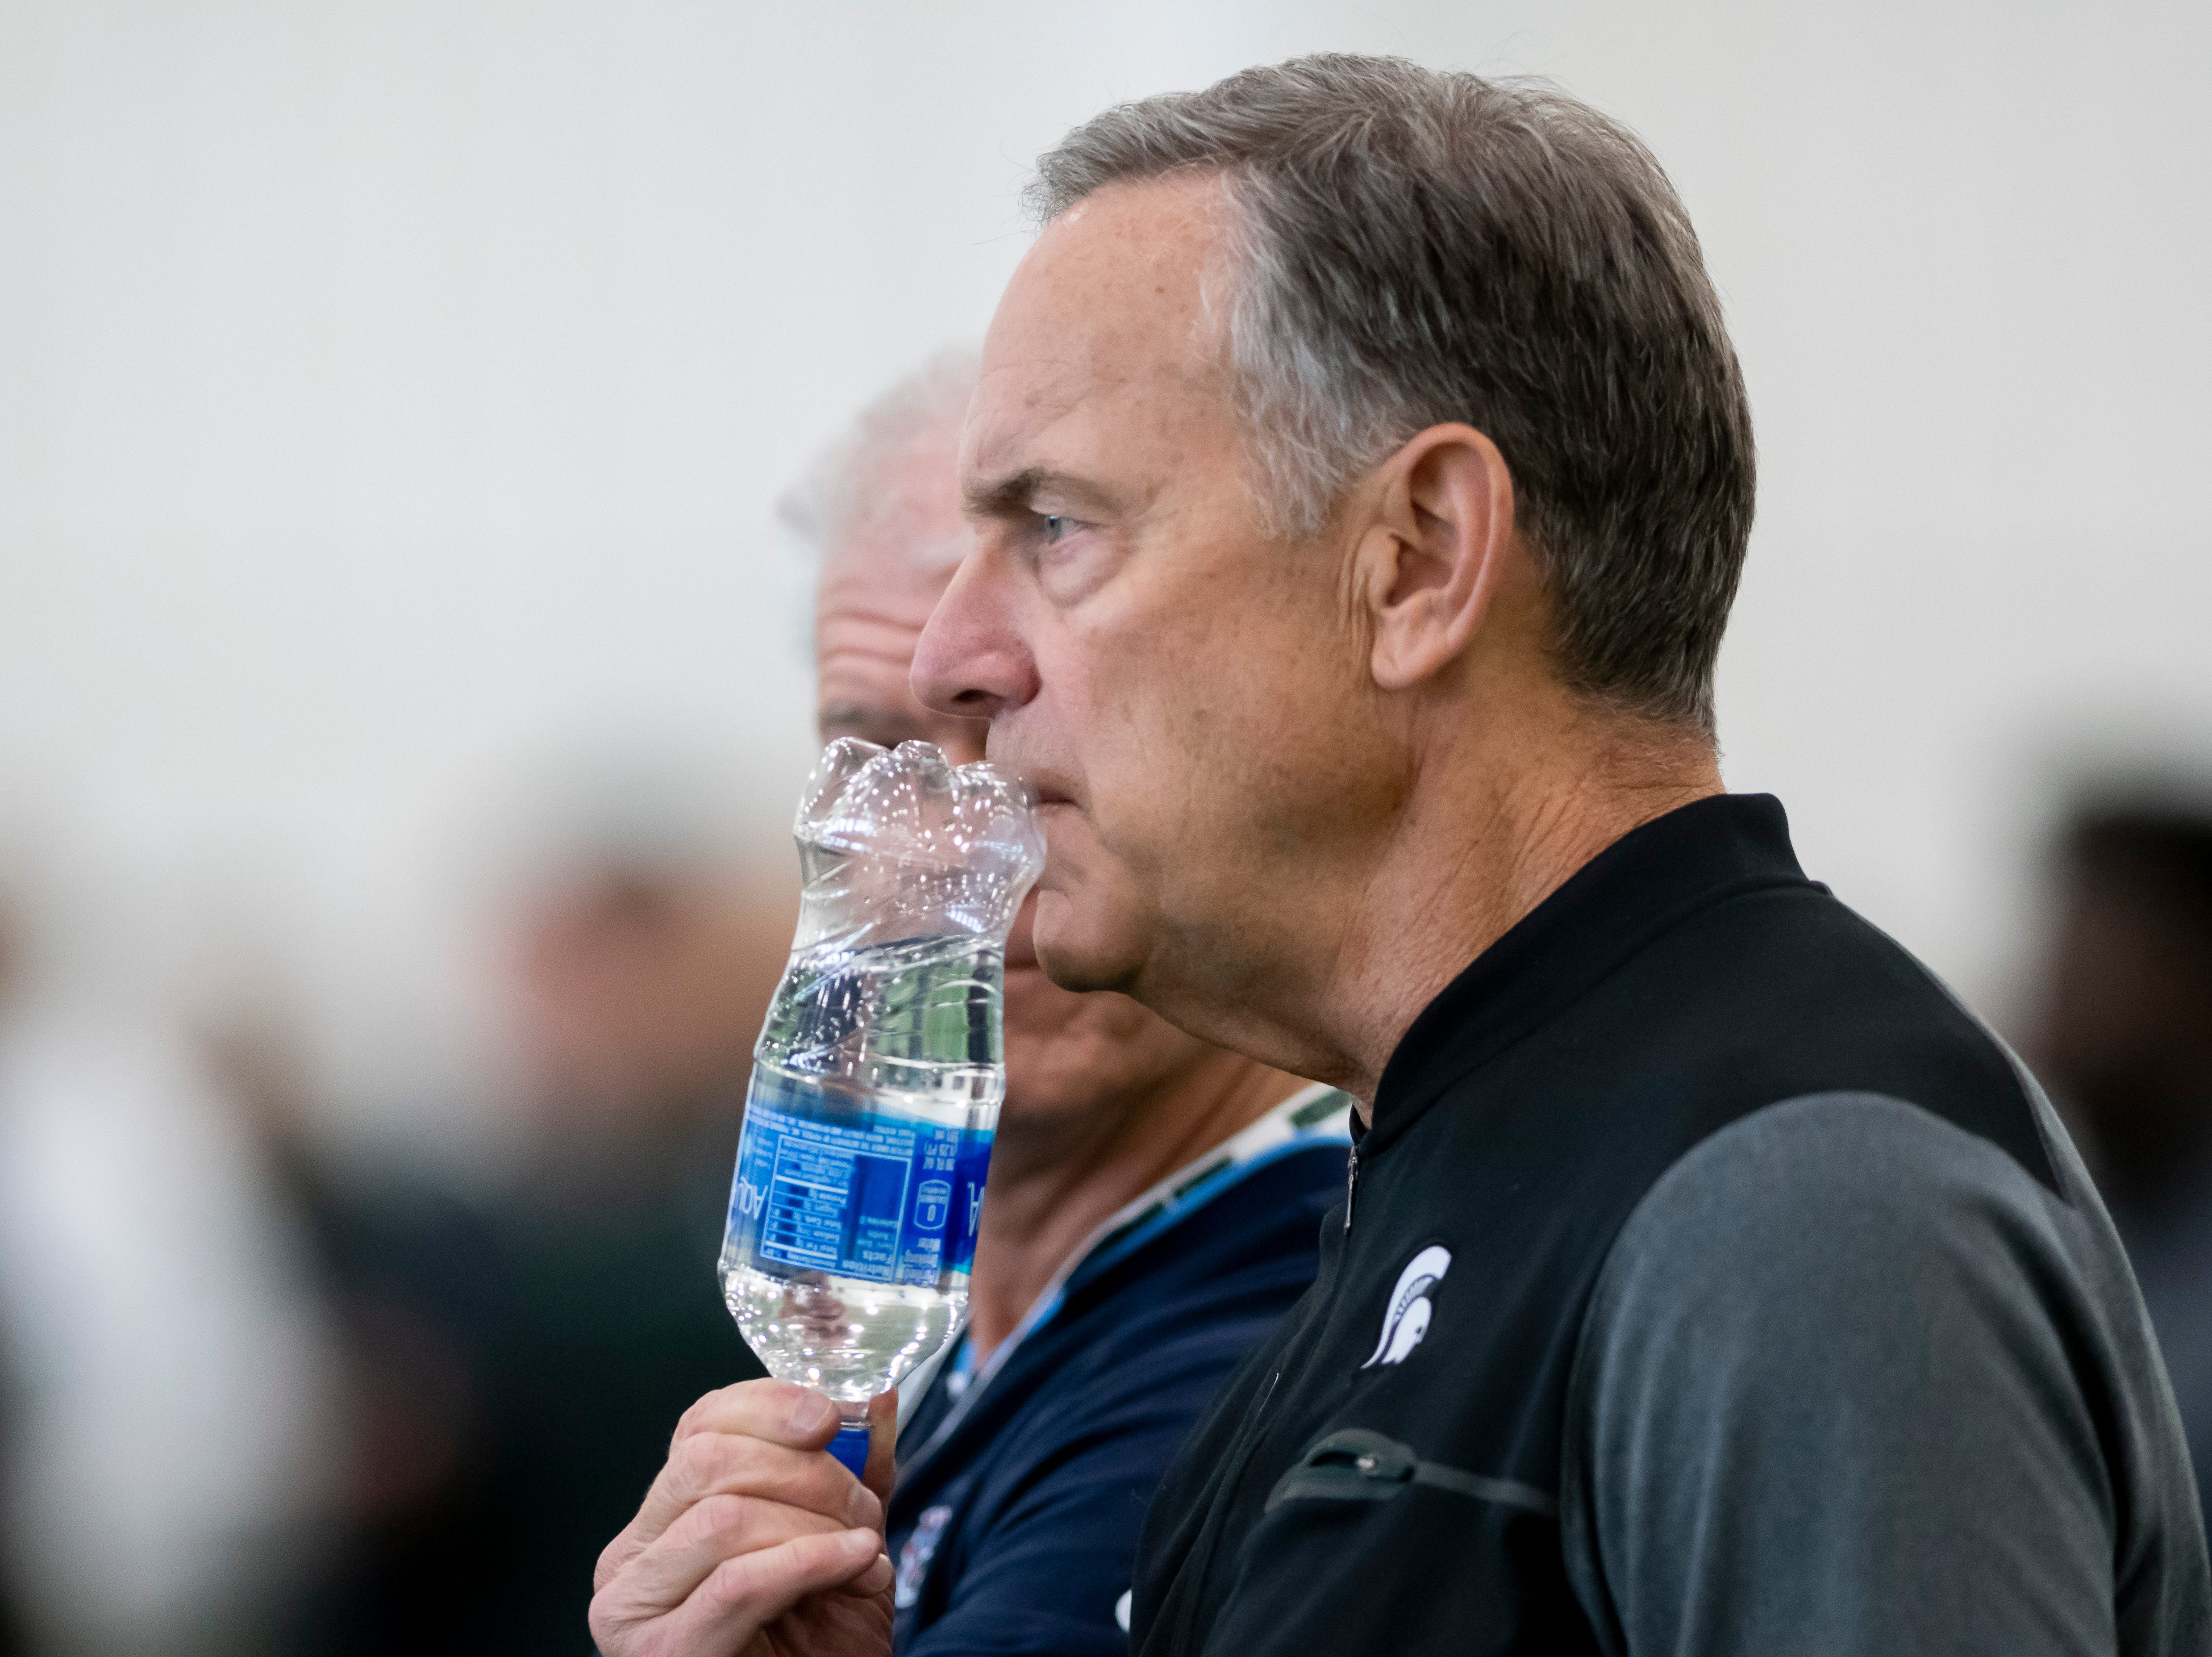 Michigan State head coach Mark Dantonio watches his players during an NFL pro day.